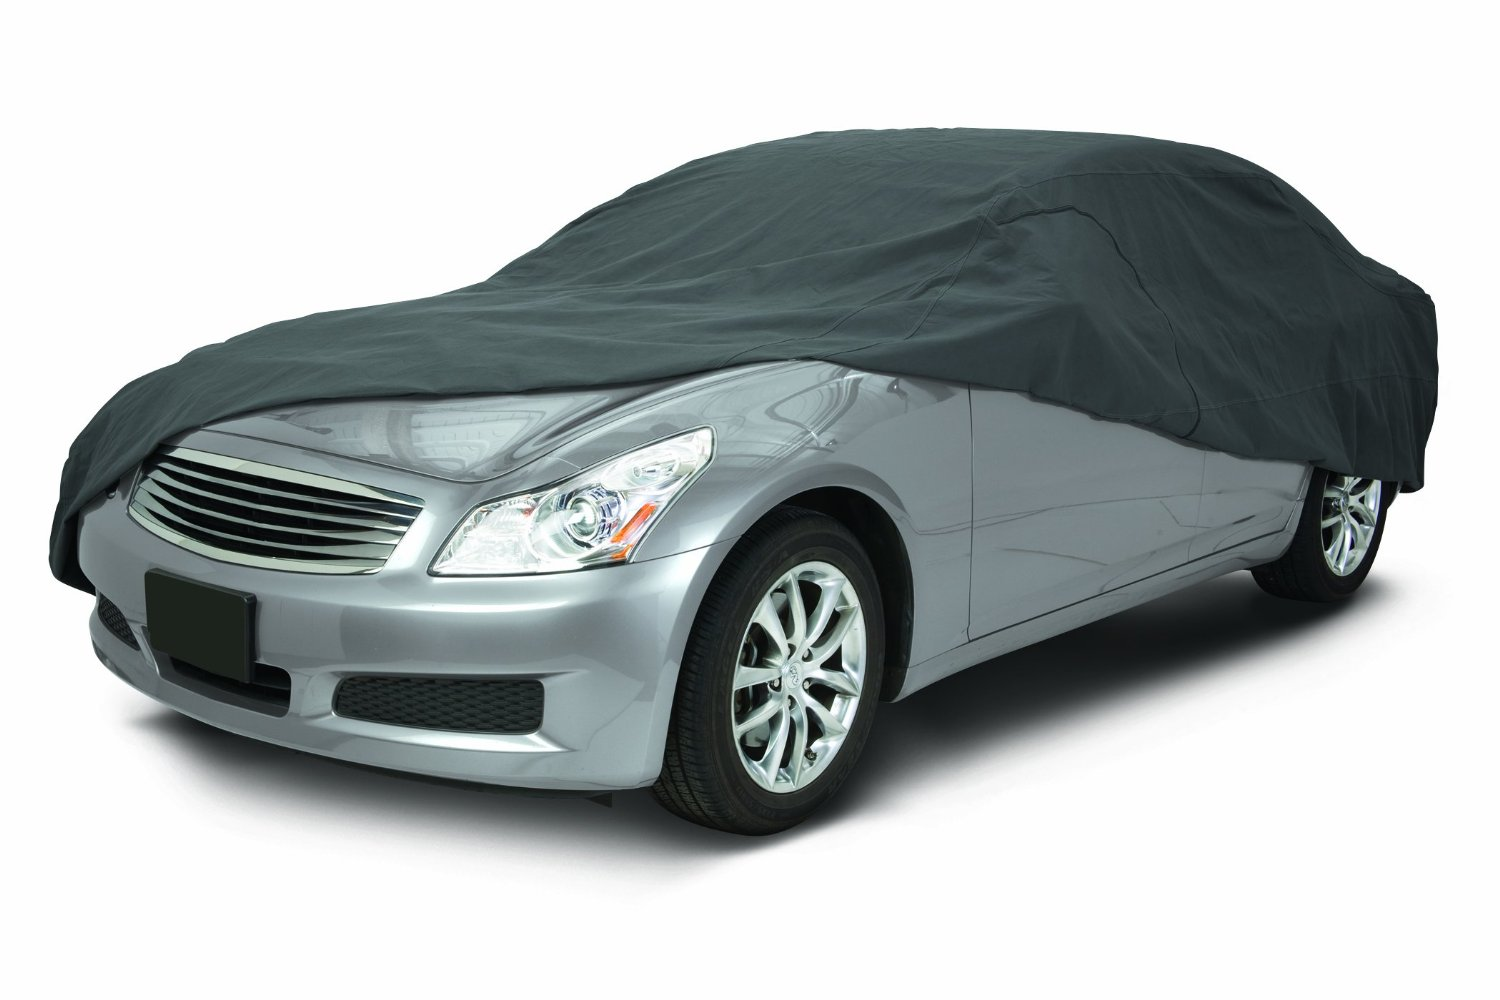 #4. Classic Accessories 10-014-261001-00 Outdoor Car Cover